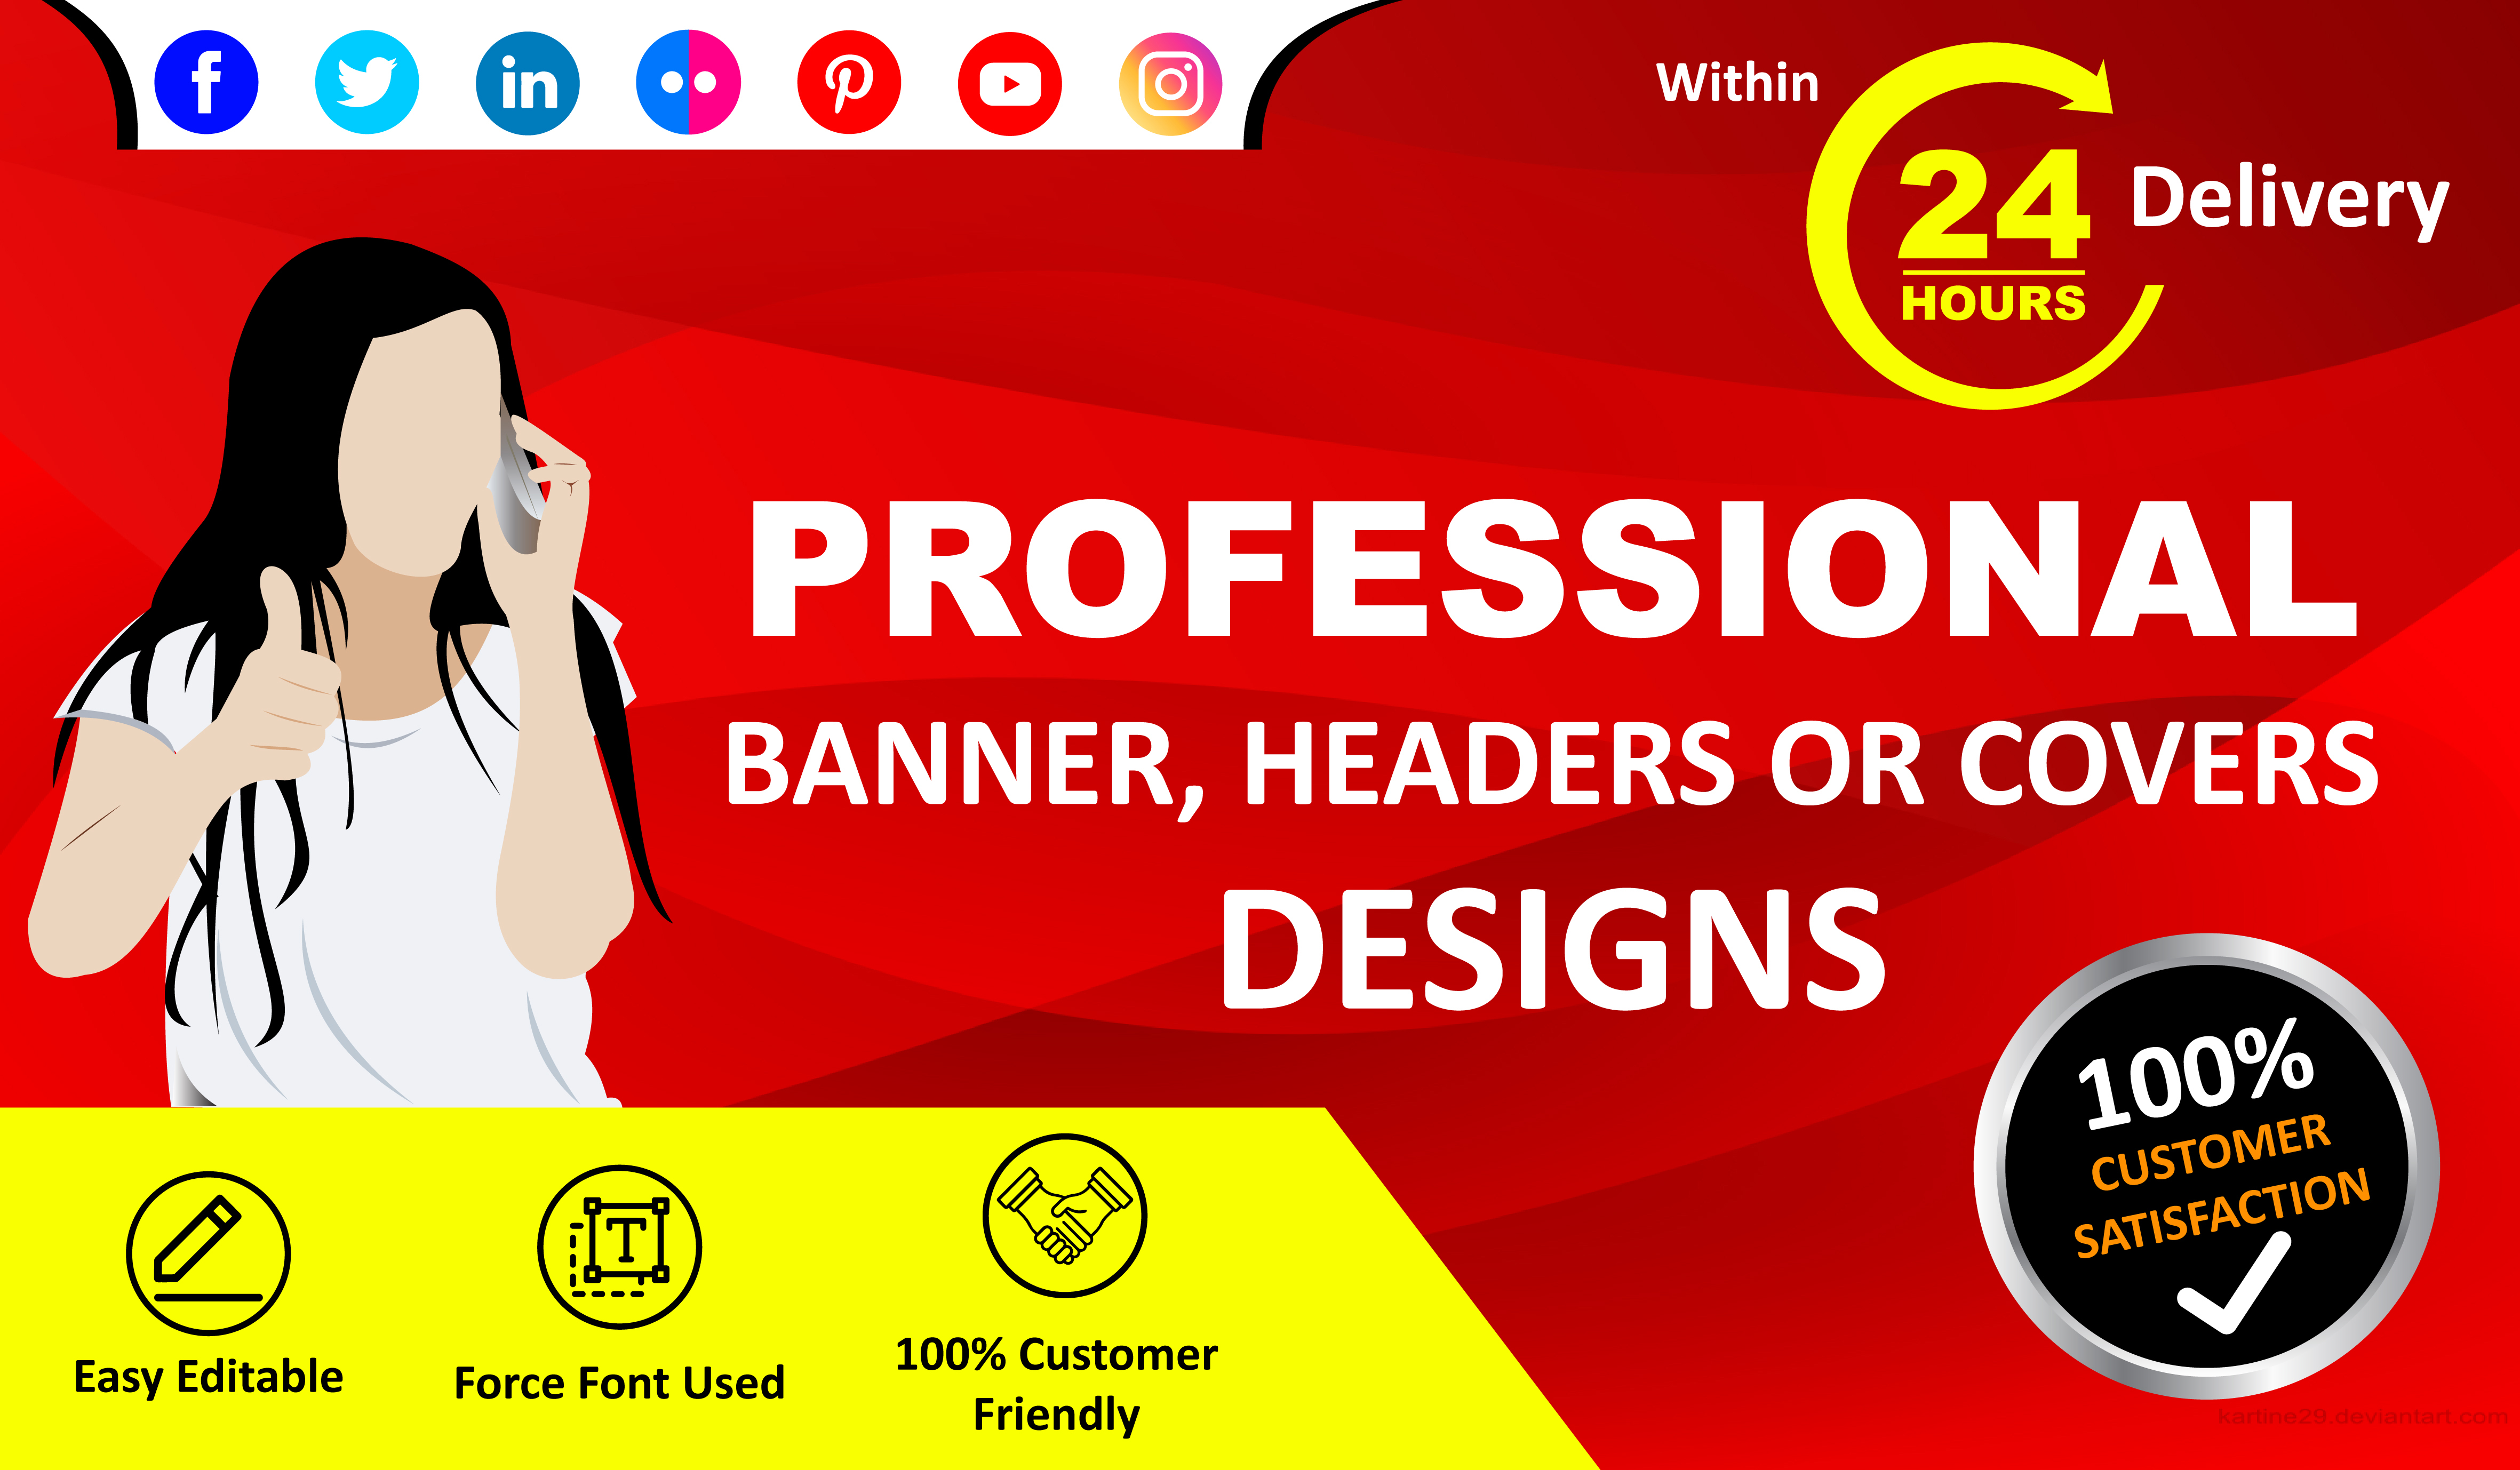 Design Your Facebook Cover or Social Media Banner within 24 hrs.